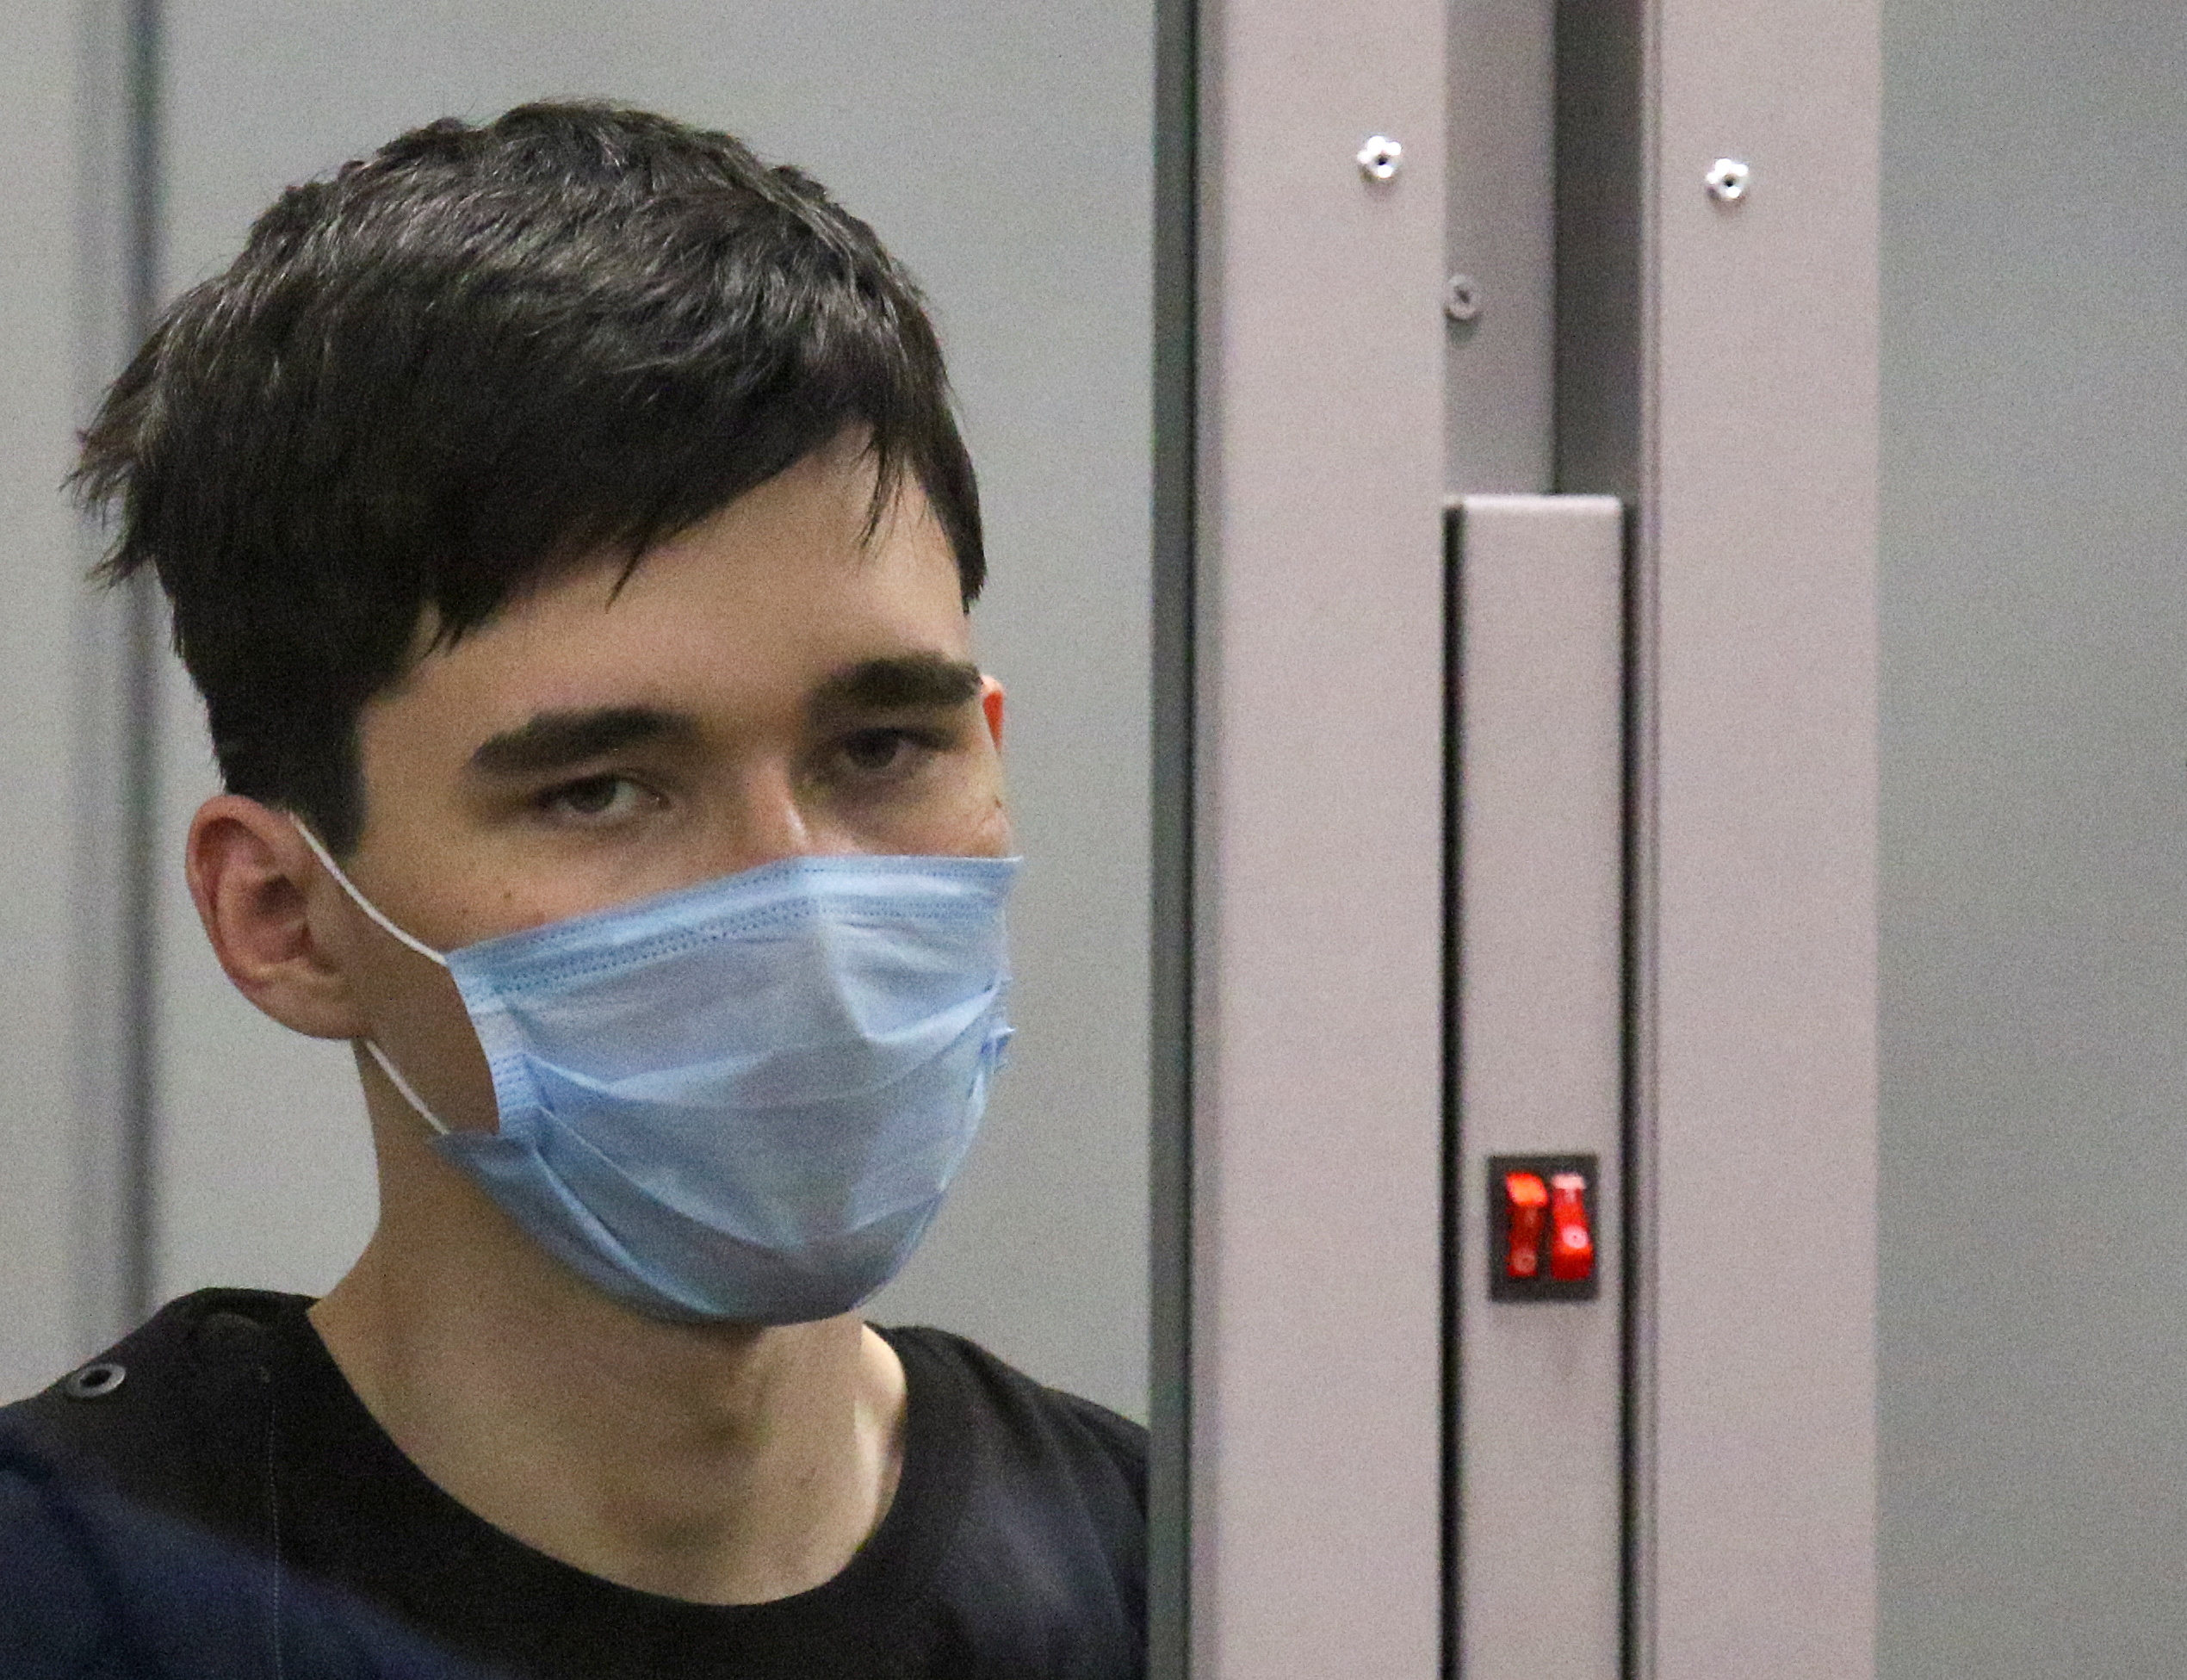 Ilnaz Galyaviev, a suspect in deadly school shooting at School Number 175, looks out of a defendants' cage during a court hearing in Kazan, Russia May 12, 2021. REUTERS/Artem Dergunov